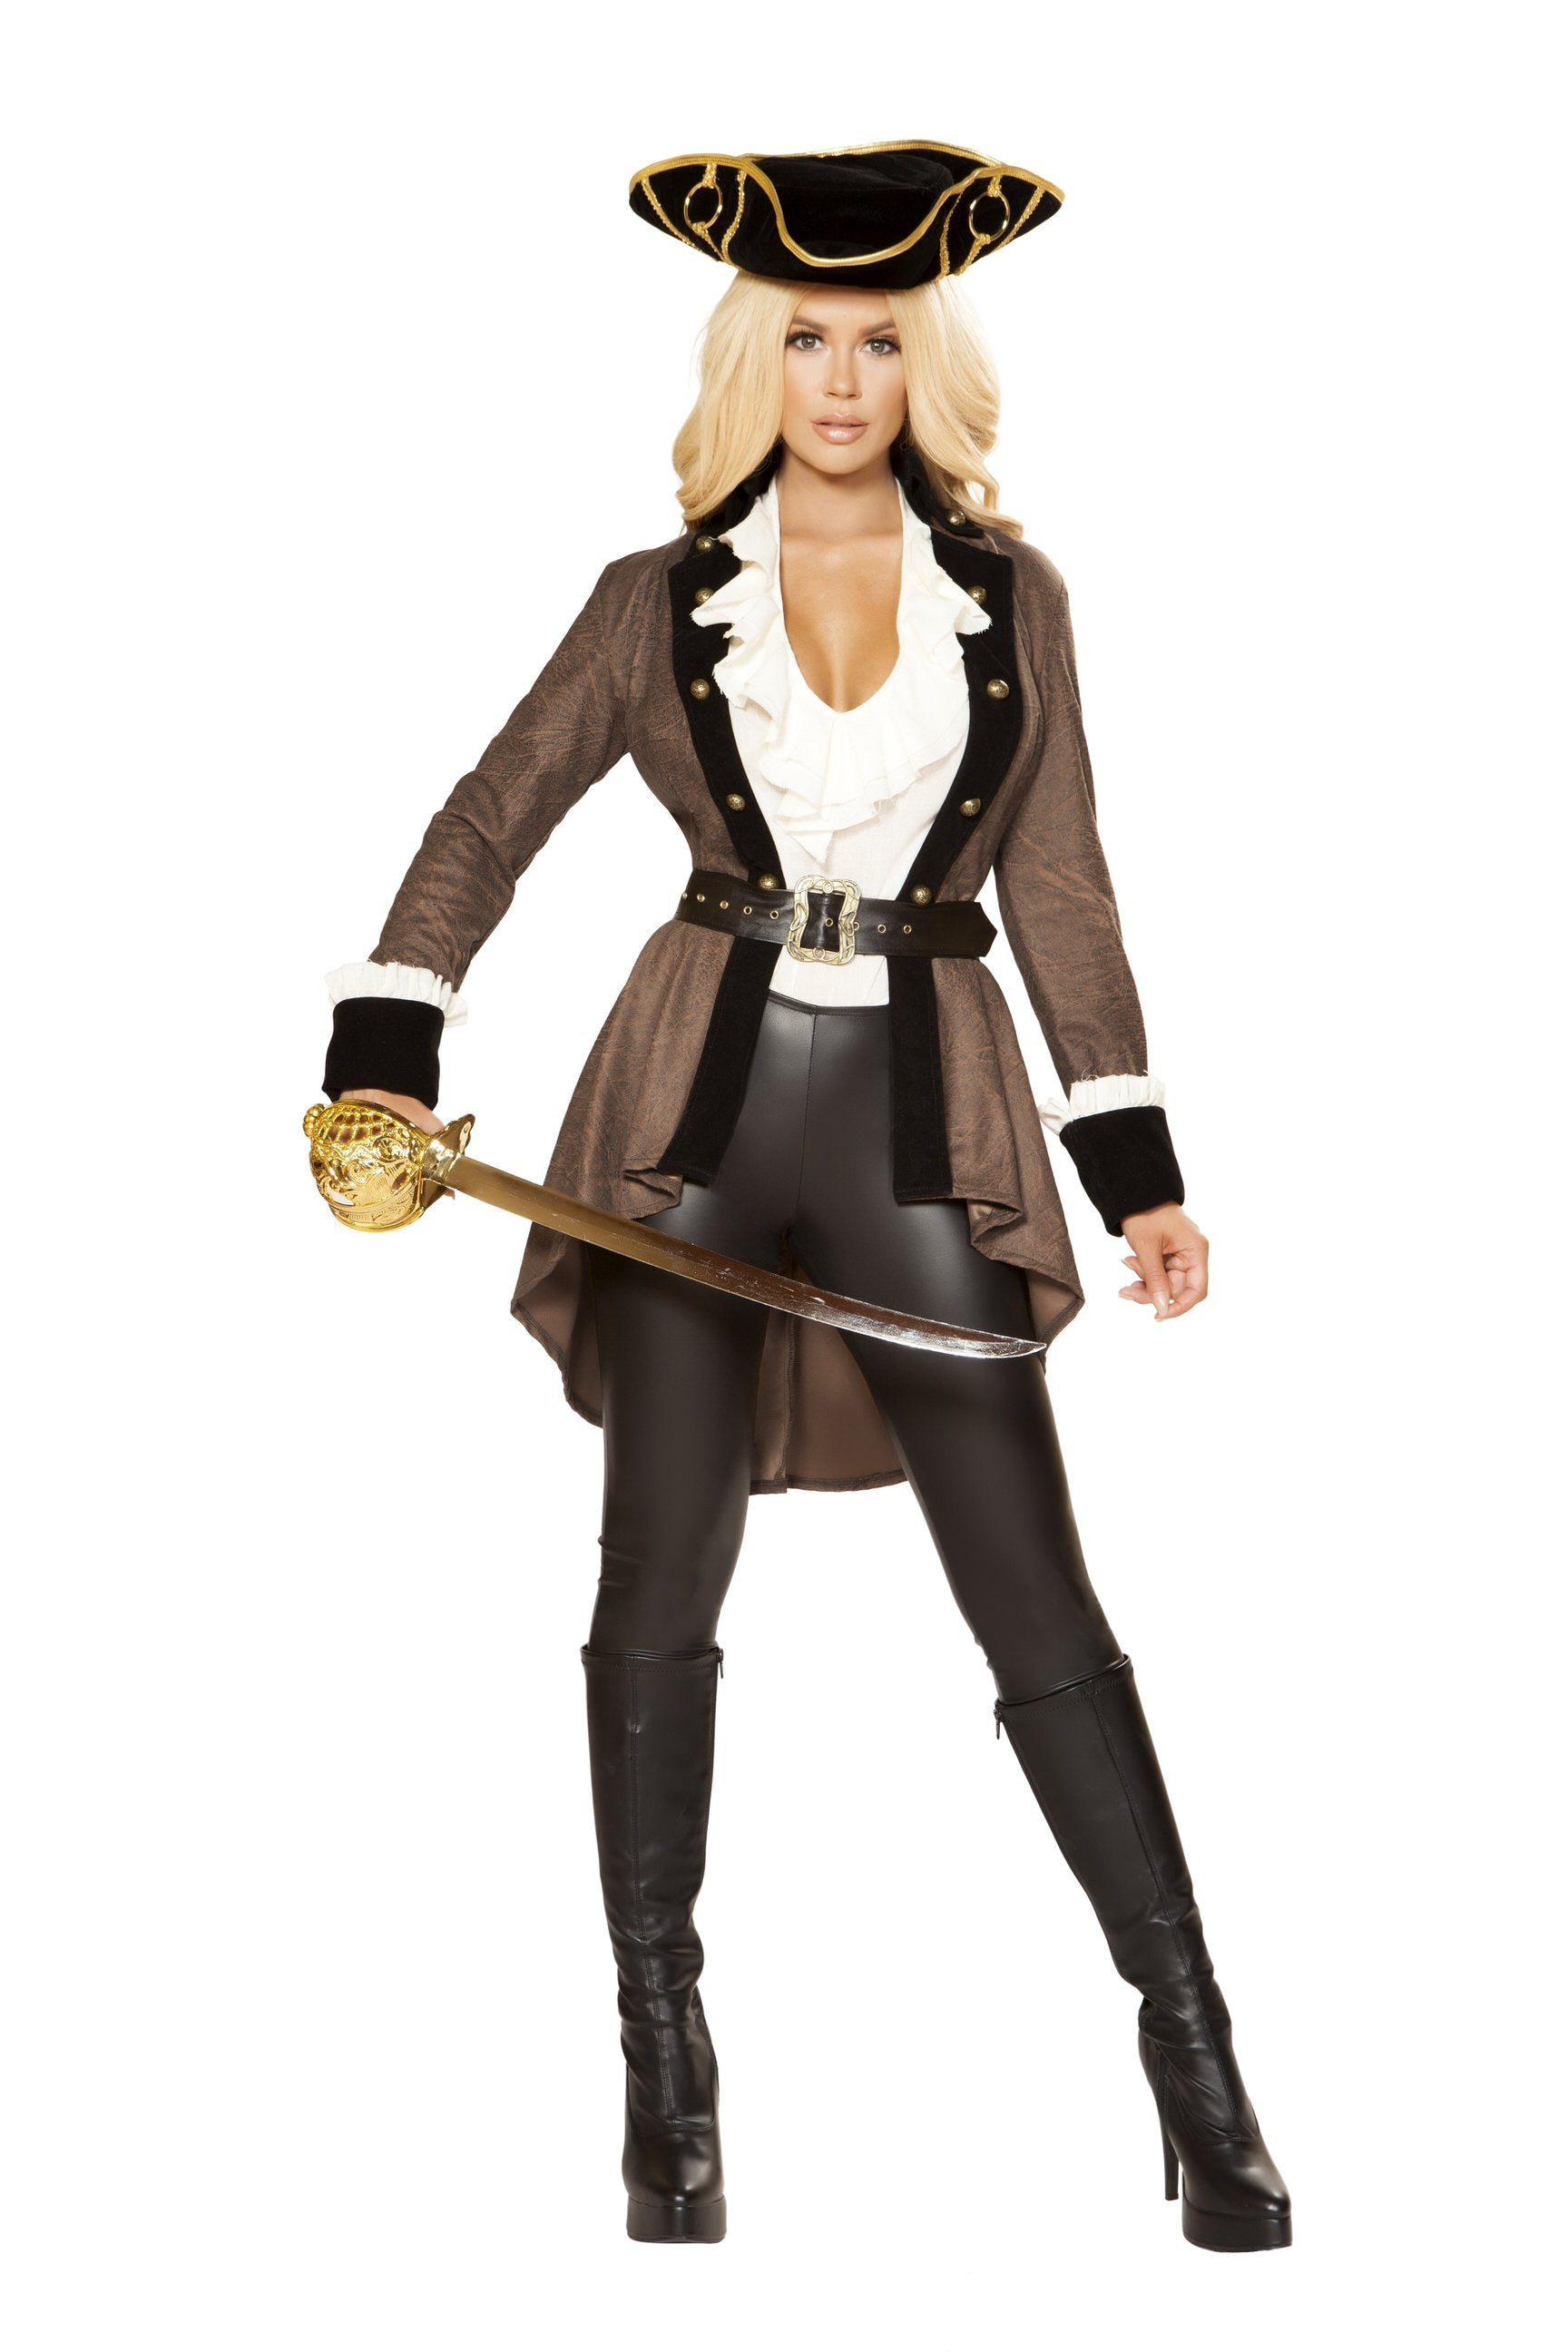 4858 - Roma Costume 5pc Brown and Black Pirate Booty Diva